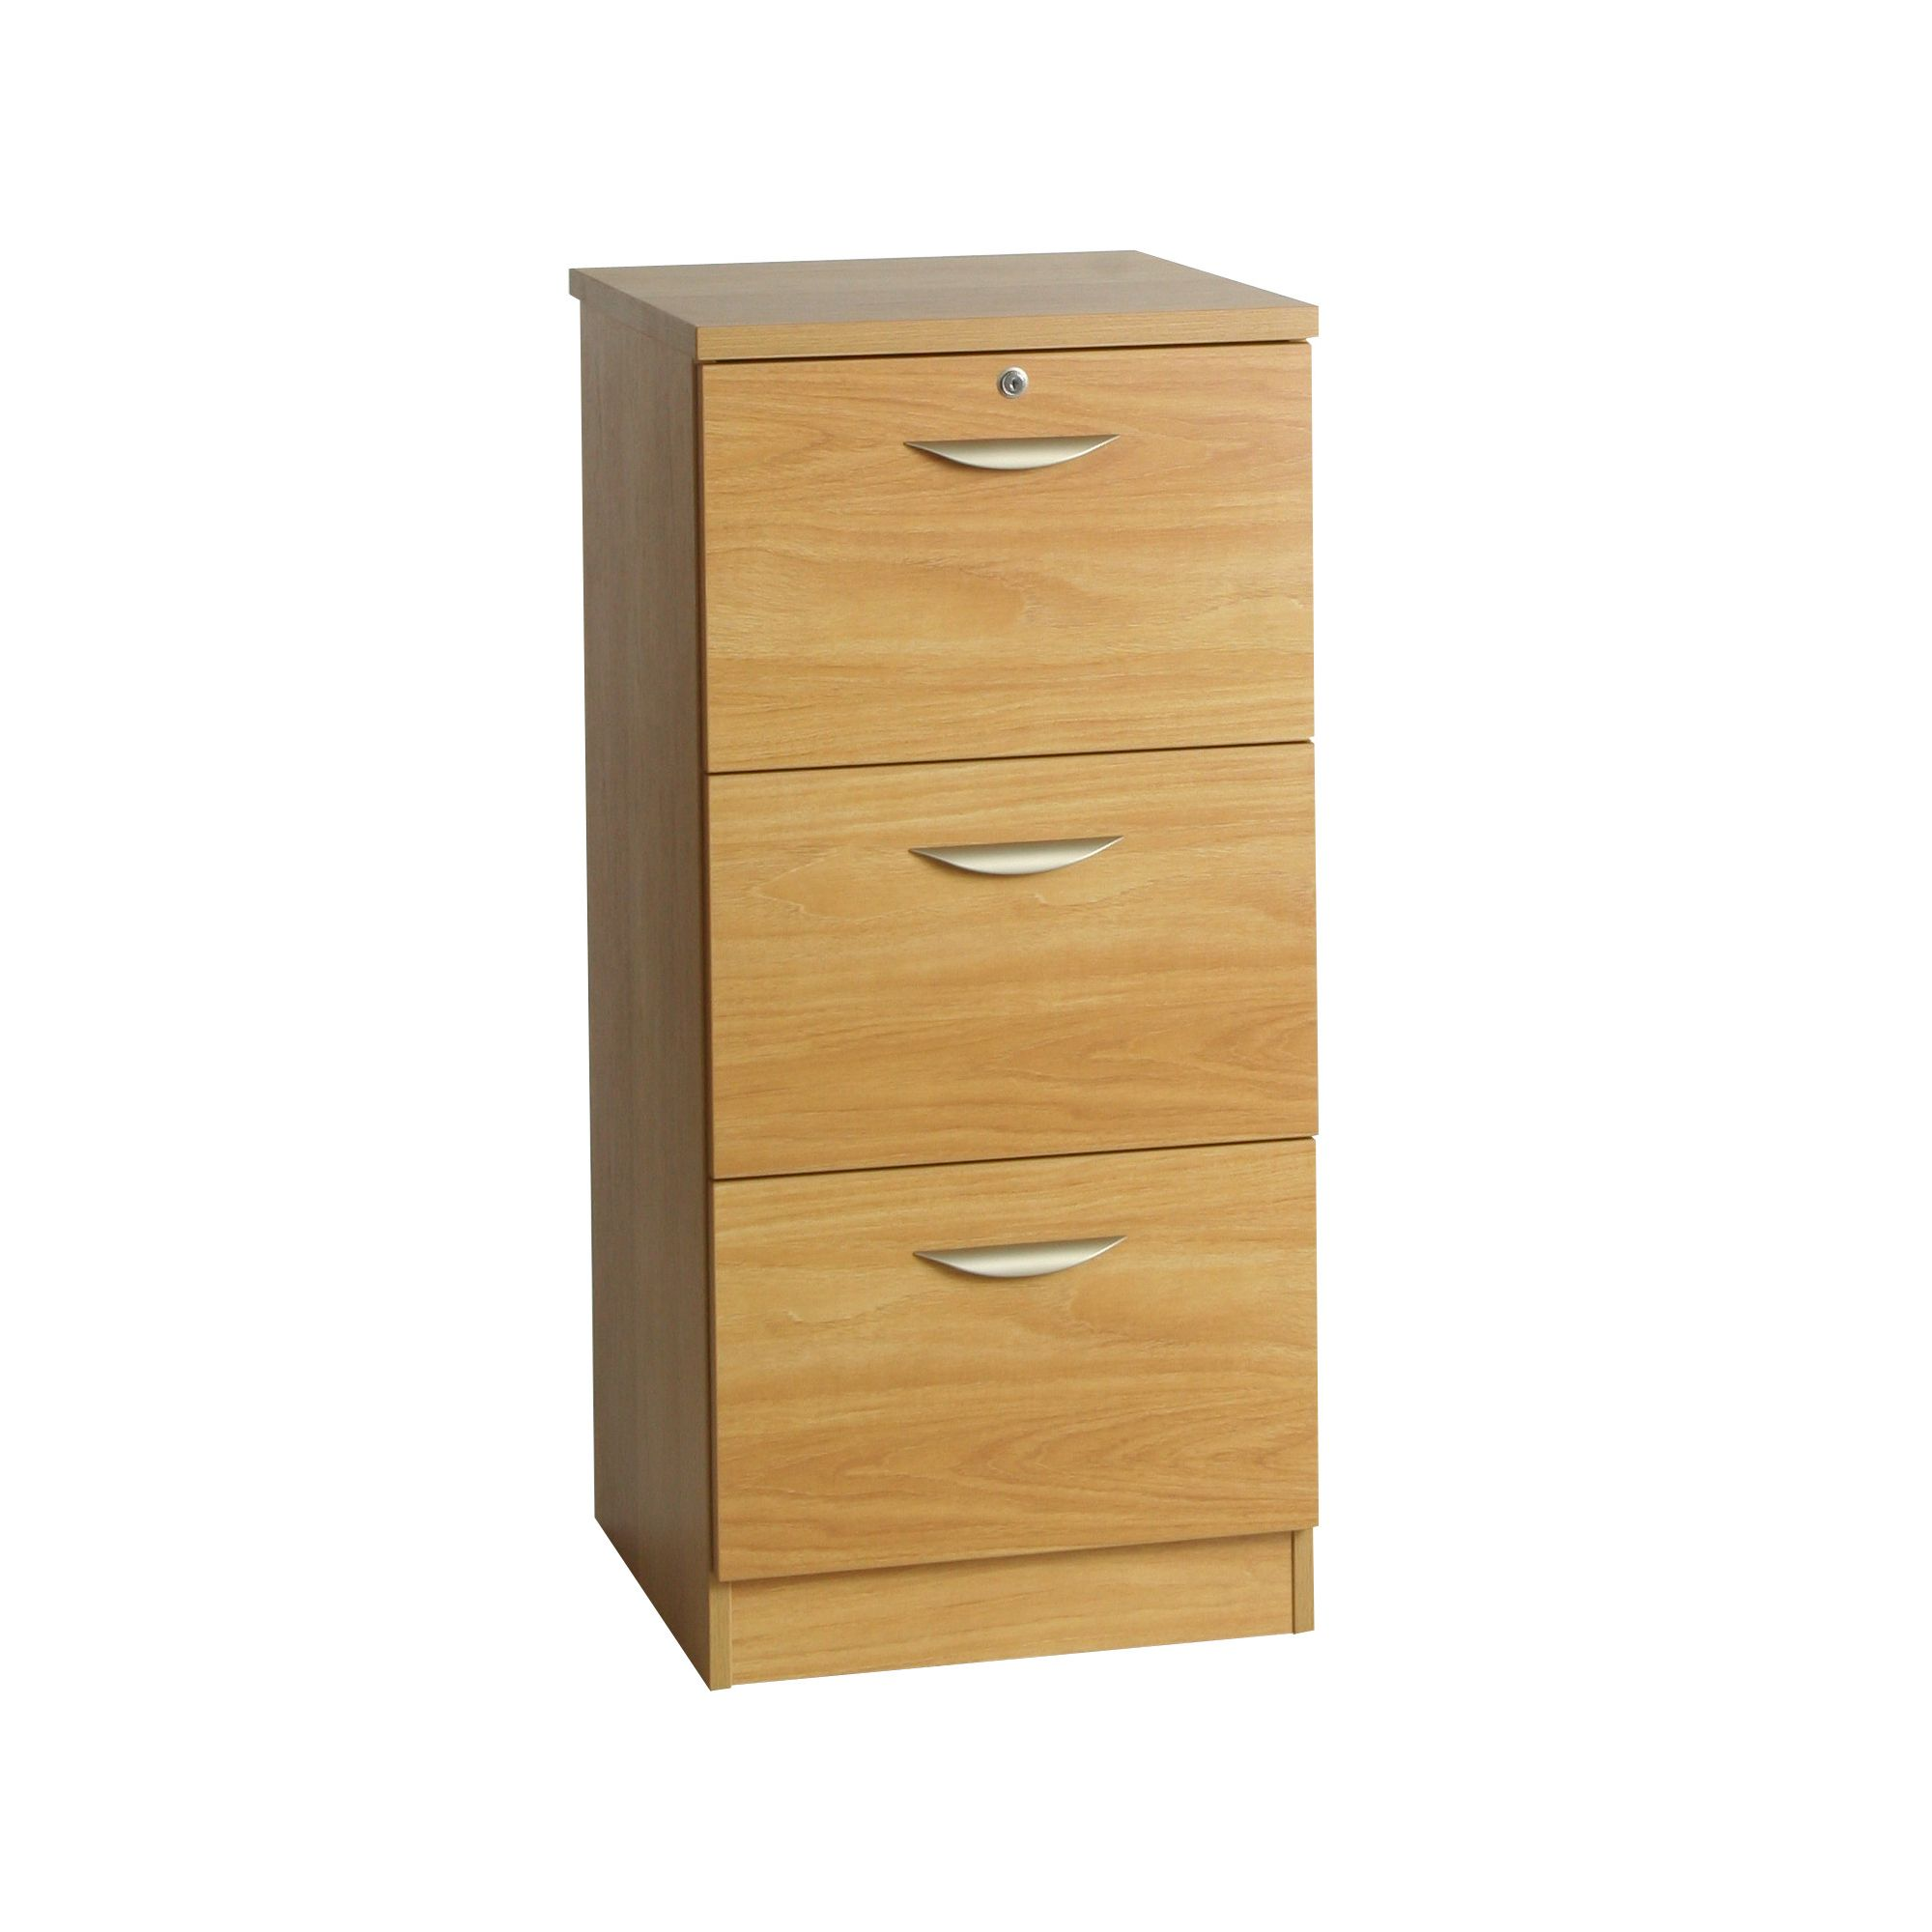 Enduro Three Drawer Tall Wooden Filing Cabinet - Teak at Tesco Direct